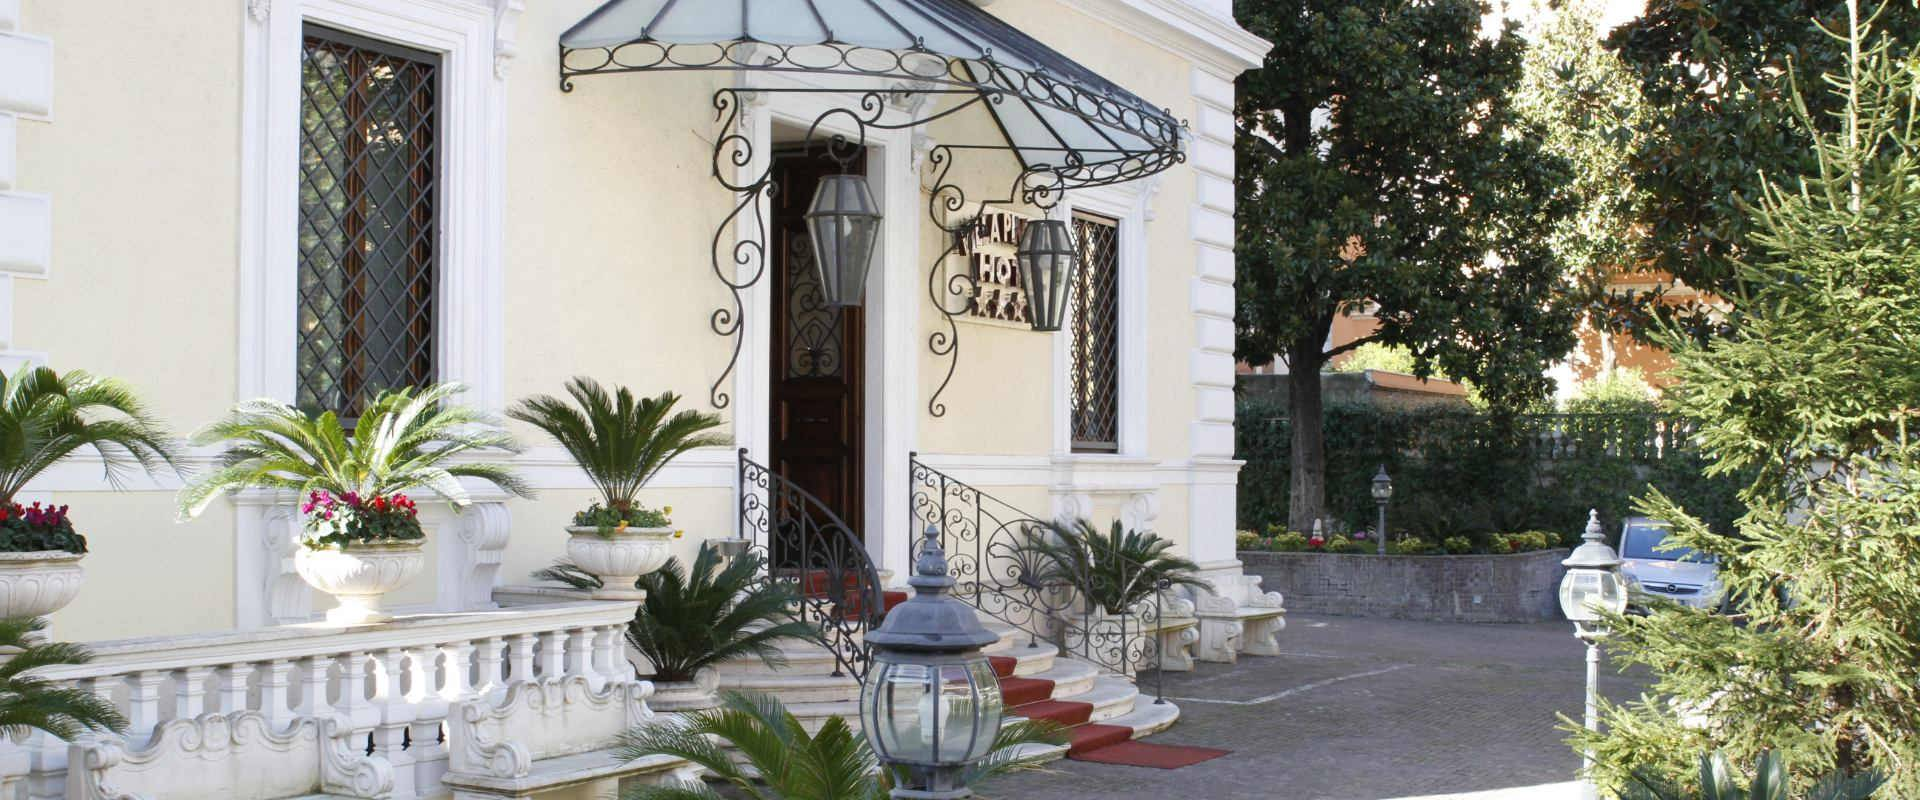 The elegance in the heart of rome villa pinciana hotel